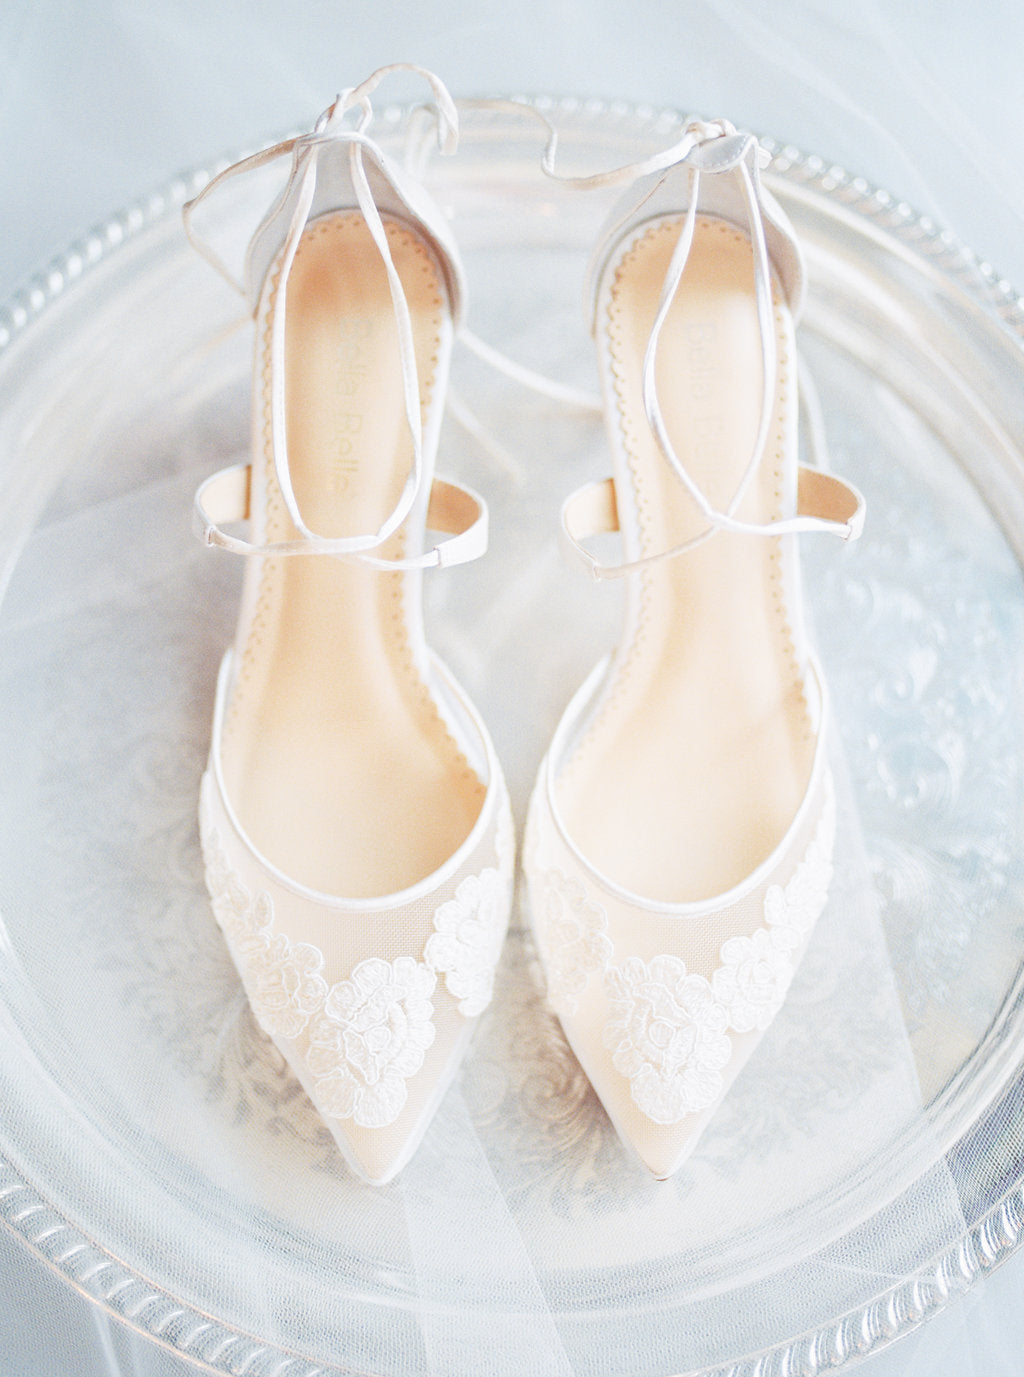 bella belle shoes amelia ivory floral lace wedding low heel kitten heel